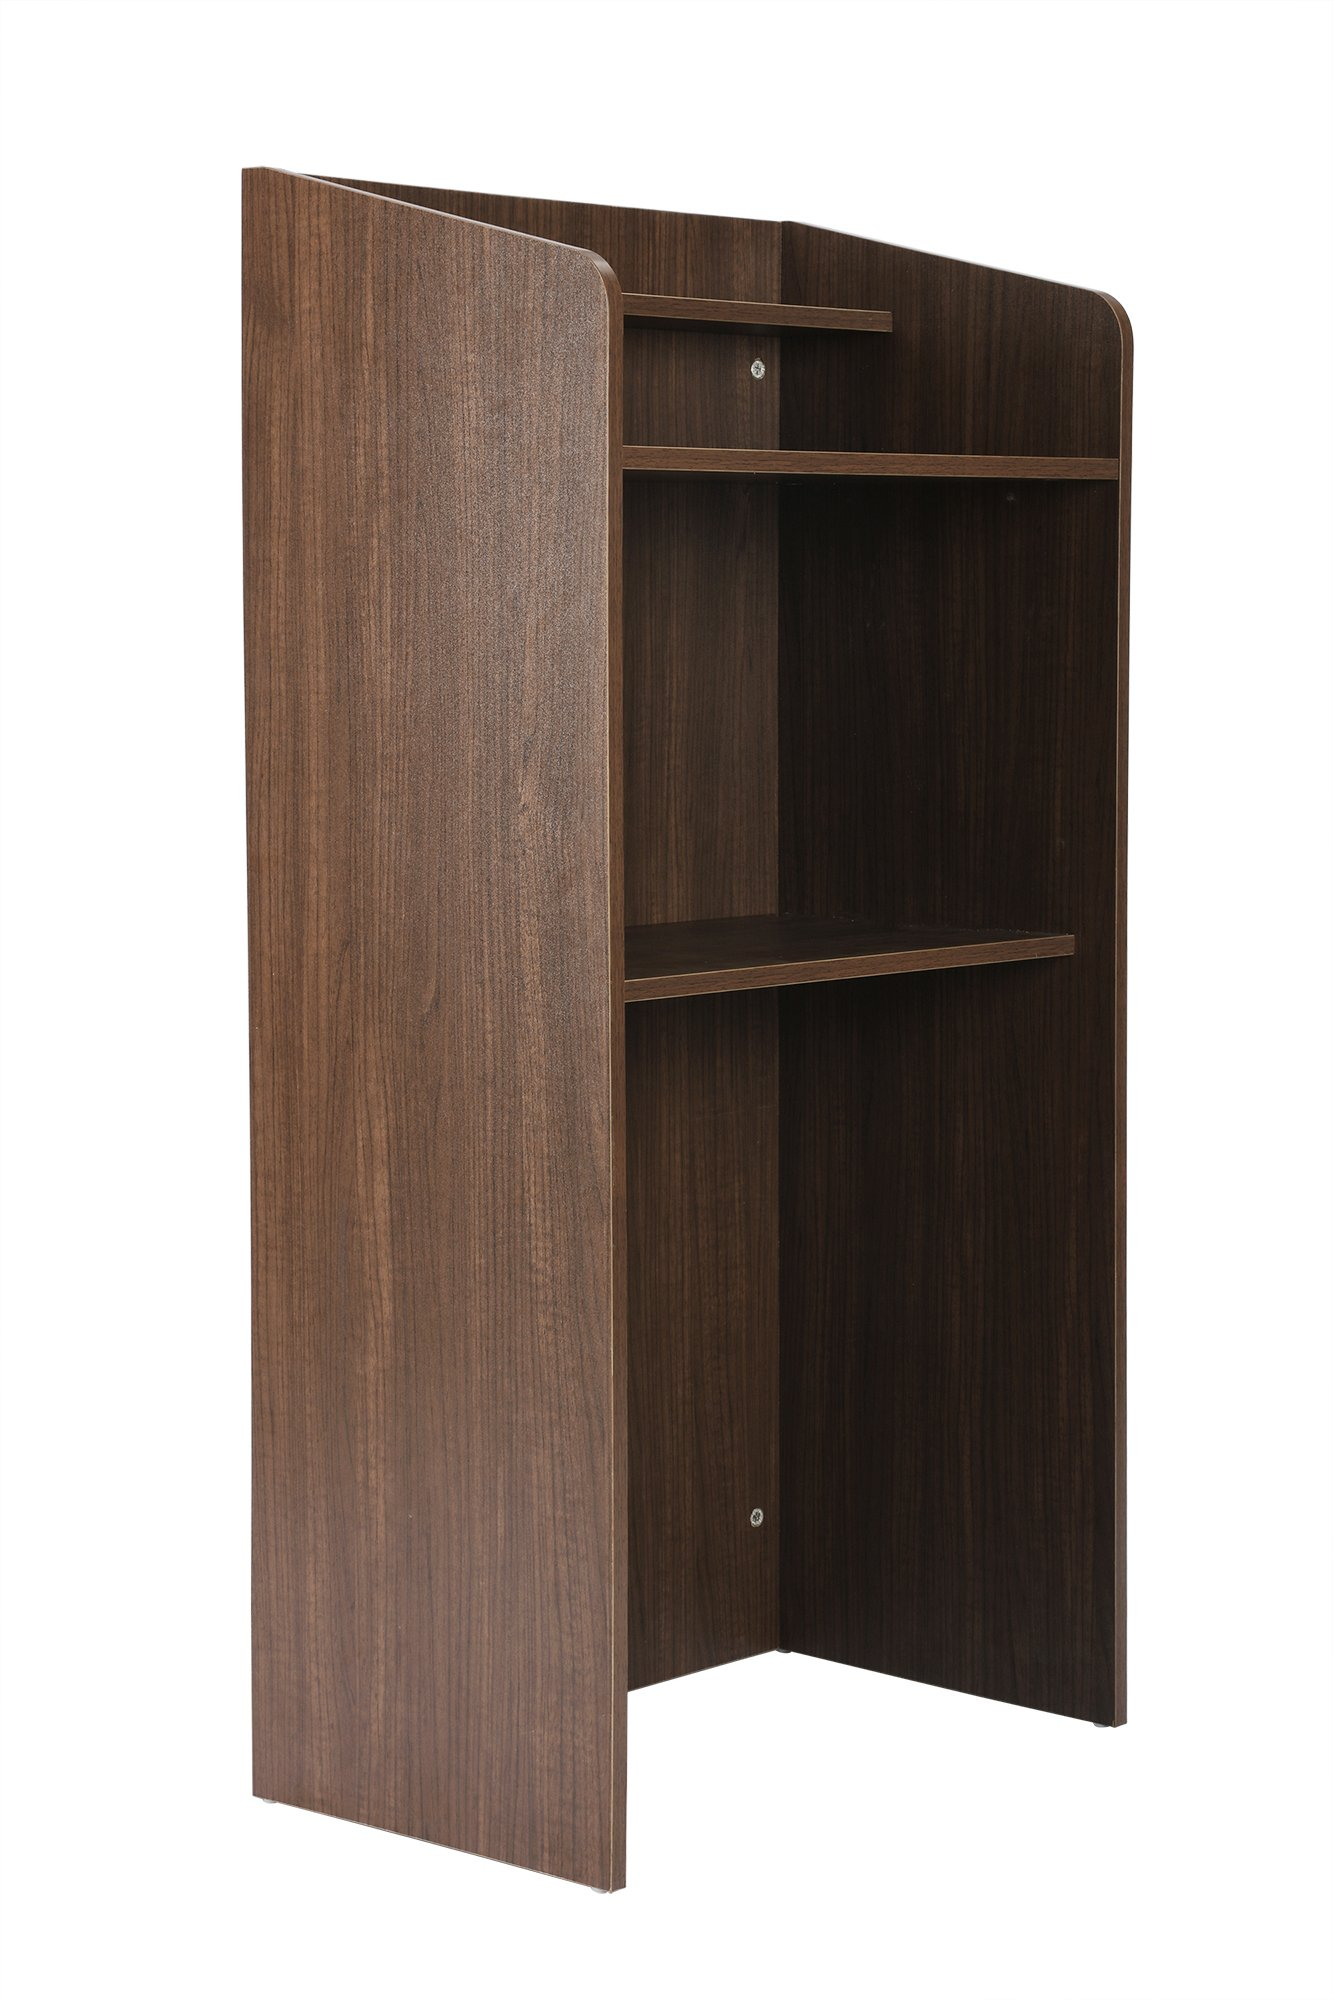 FIVEGIVEN Standing Lectern Podium, Floor Lectern with Shelf Espresso by FIVEGIVEN